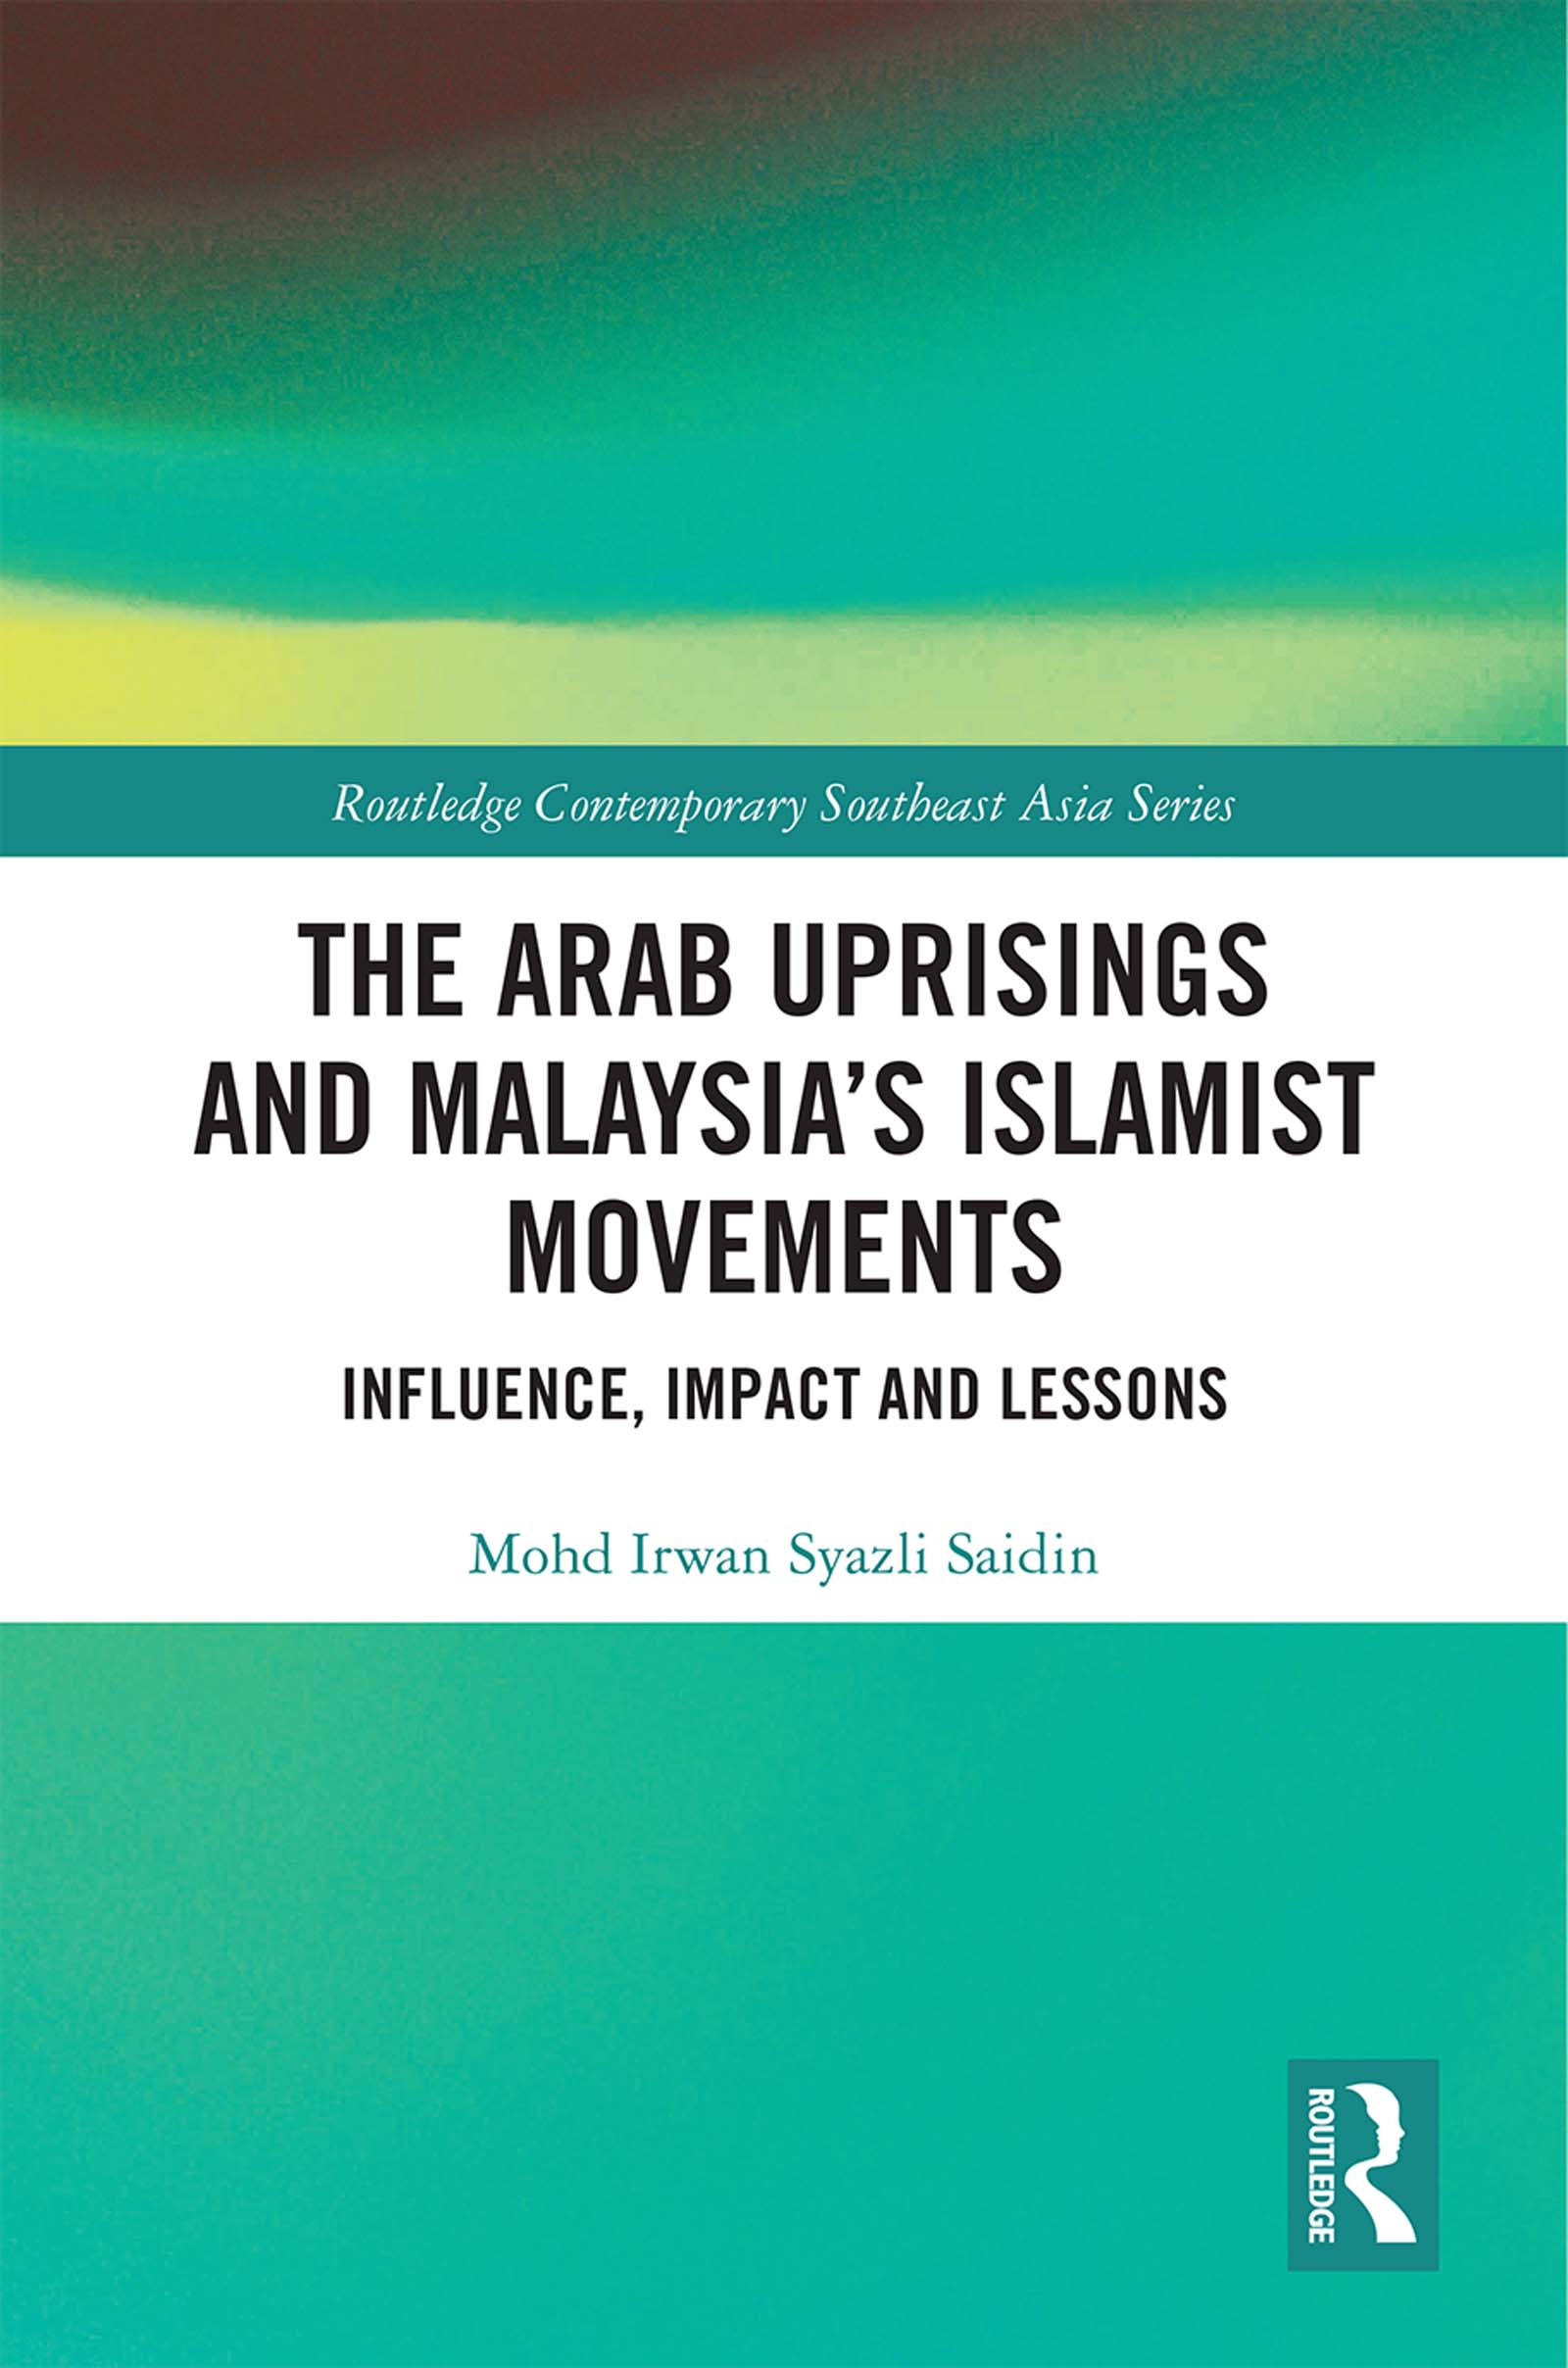 The Arab Uprisings and Malaysia's Islamist Movements: Influence, Impact and Lessons book cover